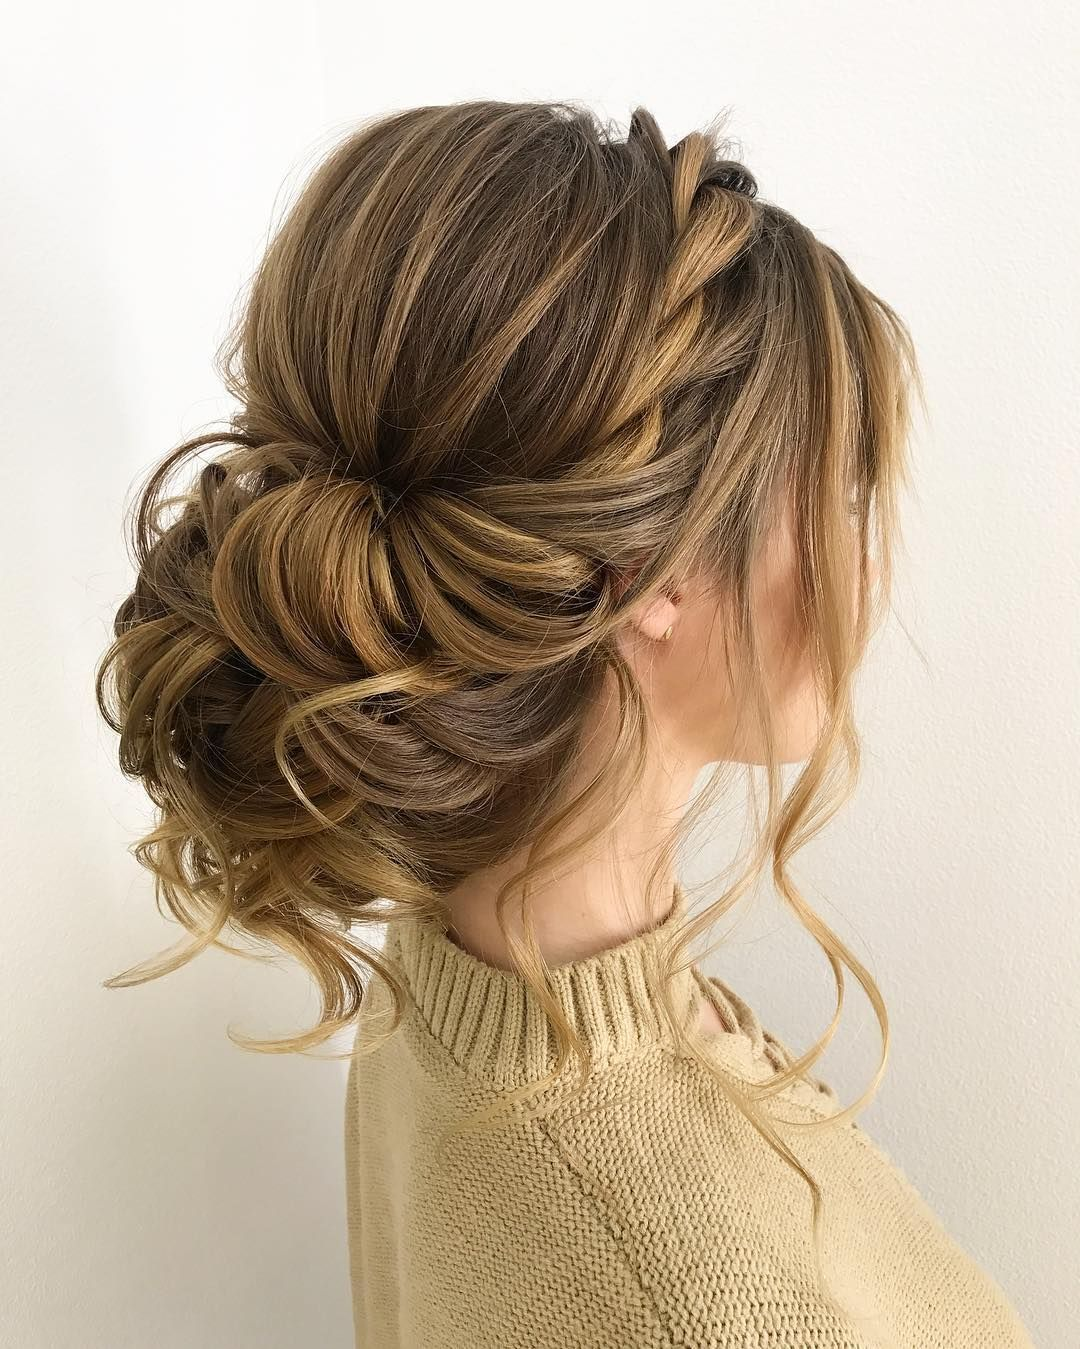 Gorgeous wedding updo hairstyles that will wow your big day hair